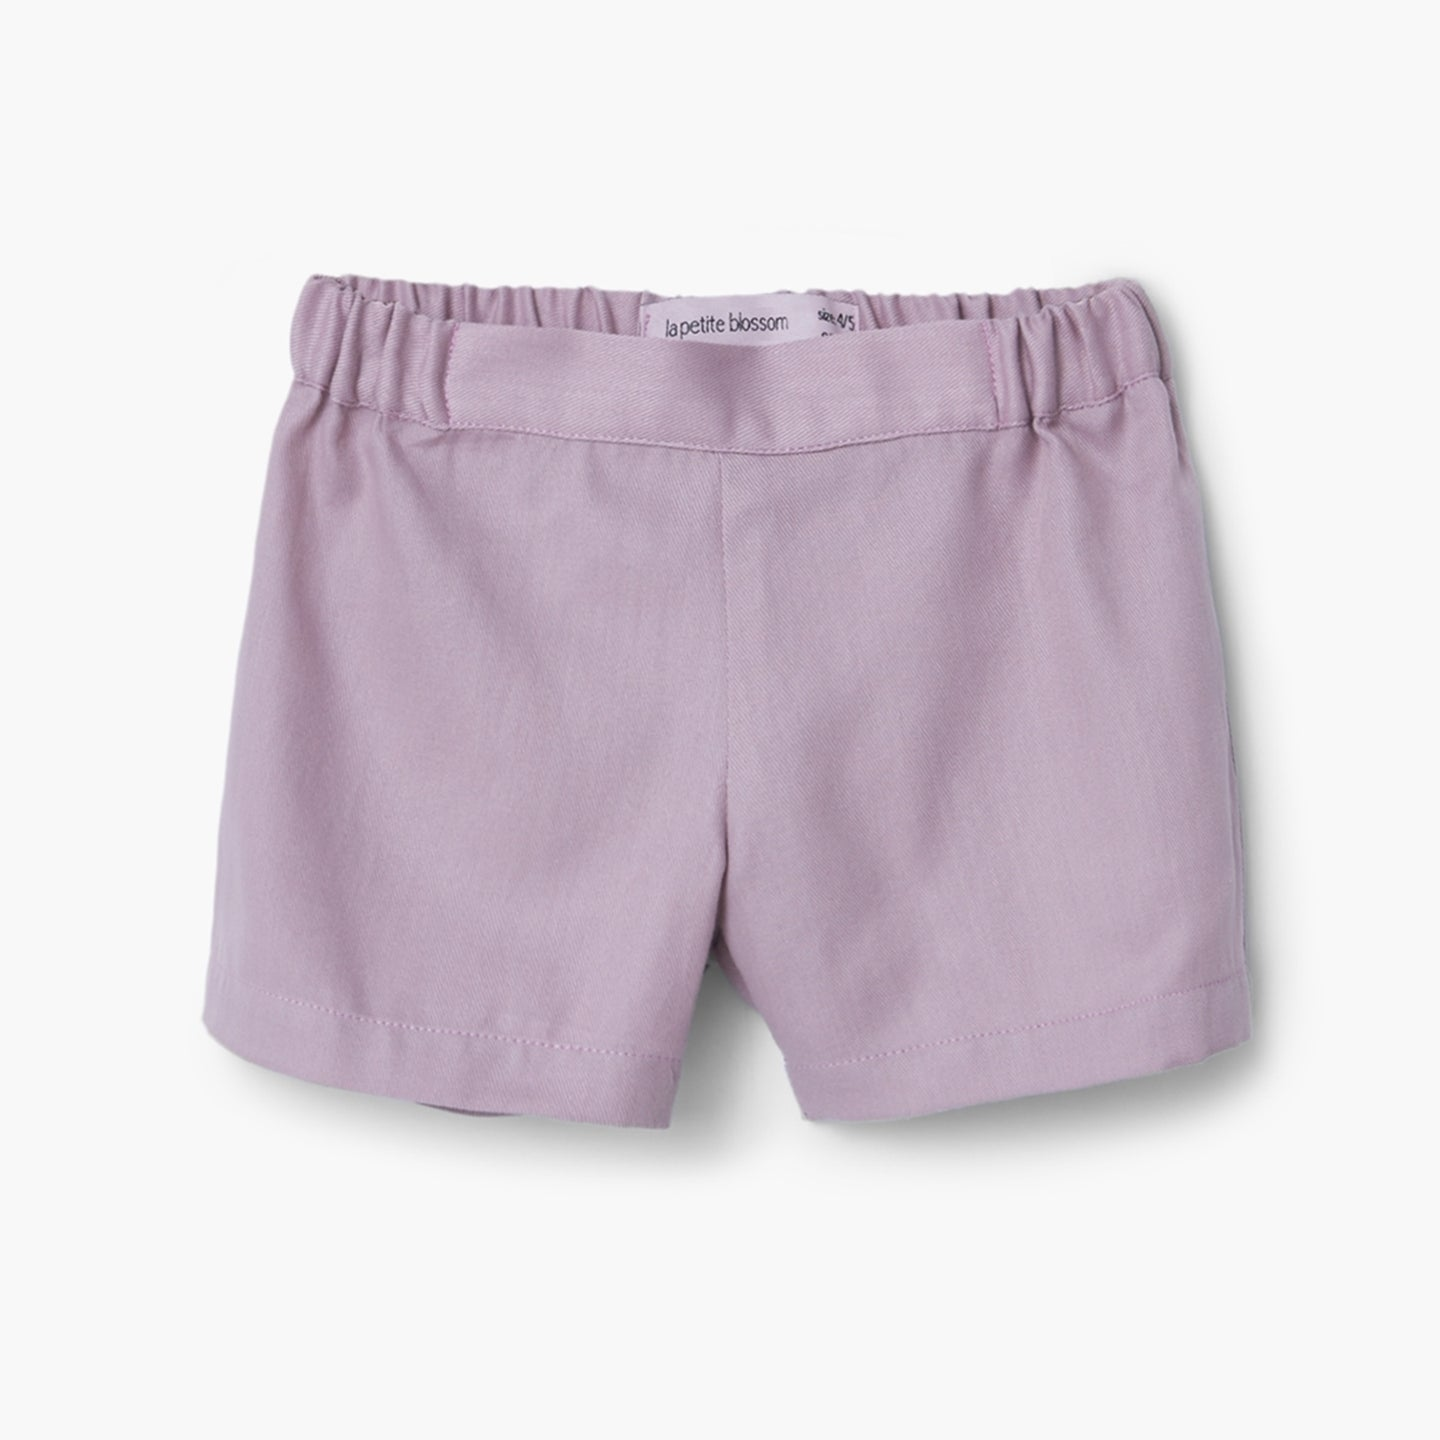 Vintage Pink Shorts (SALE 50% OFF) Sizes 7 & 8